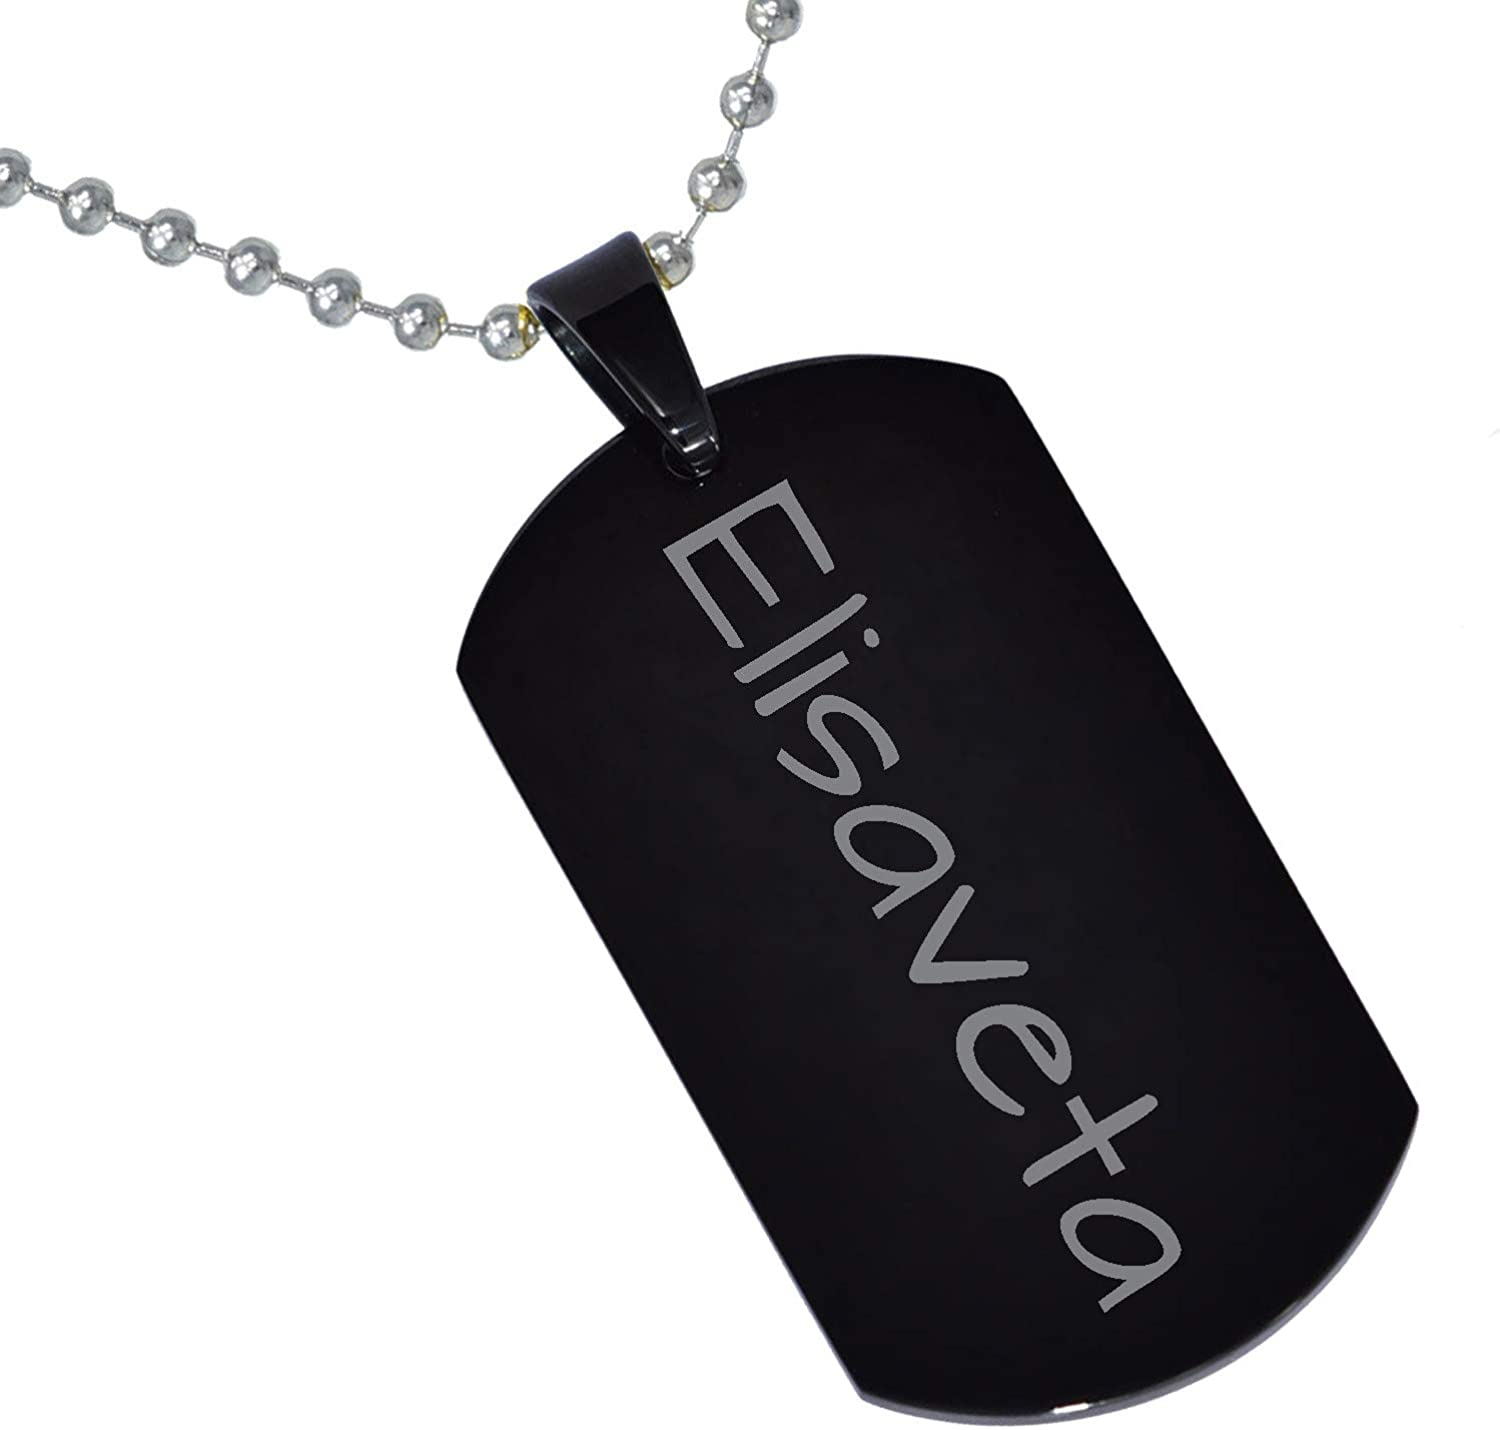 Stainless Steel Silver Gold Black Rose Gold Color Baby Name Elisaveta Engraved Personalized Gifts For Son Daughter Boyfriend Girlfriend Initial Customizable Pendant Necklace Dog Tags 24 Ball Chain